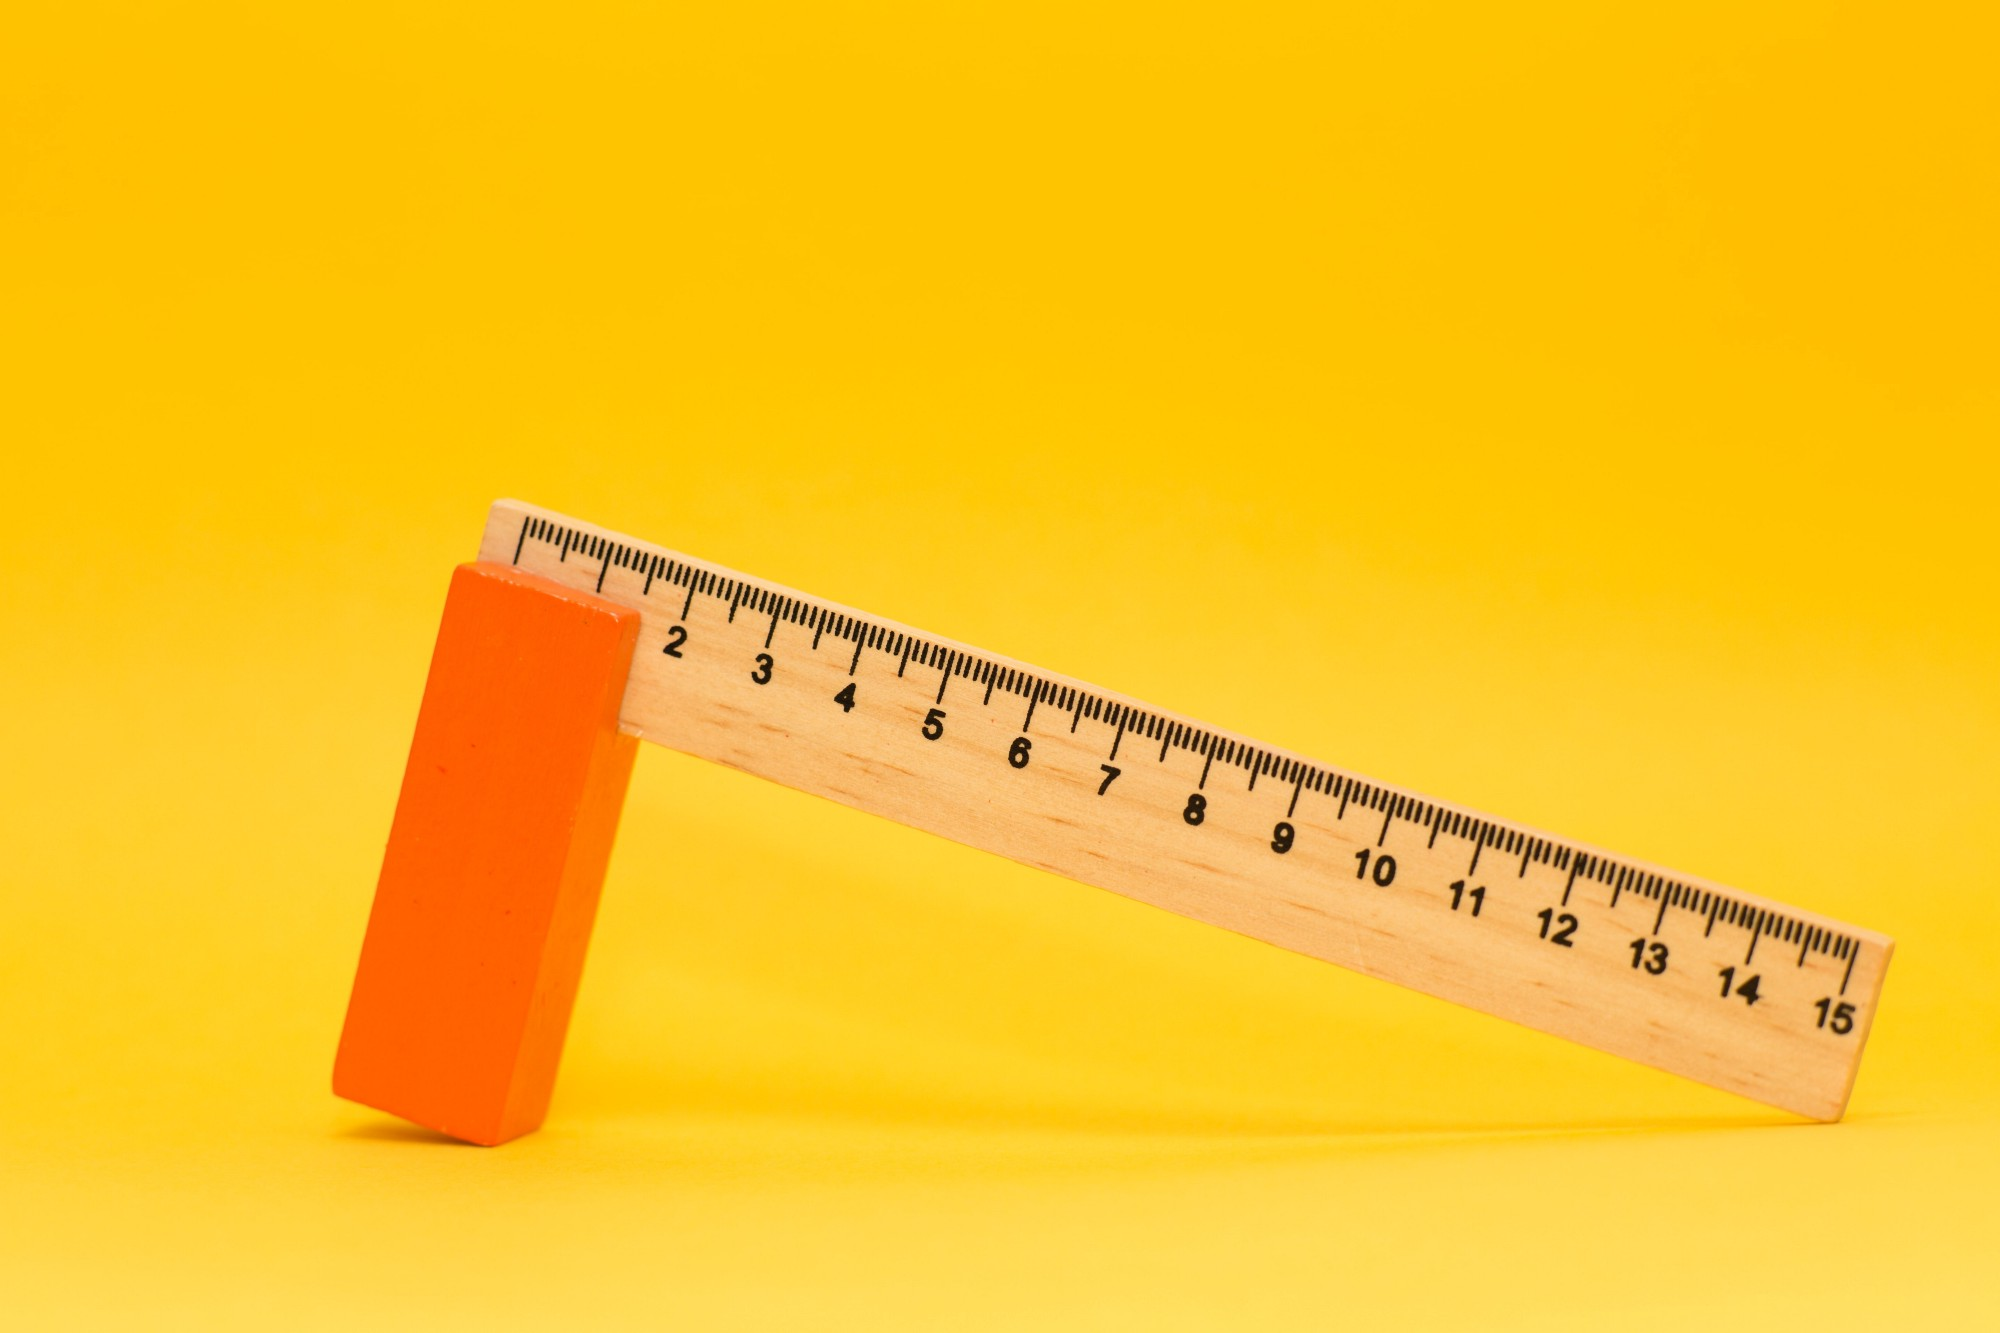 A ruler with one end leaning on an orange block with a yellow background.